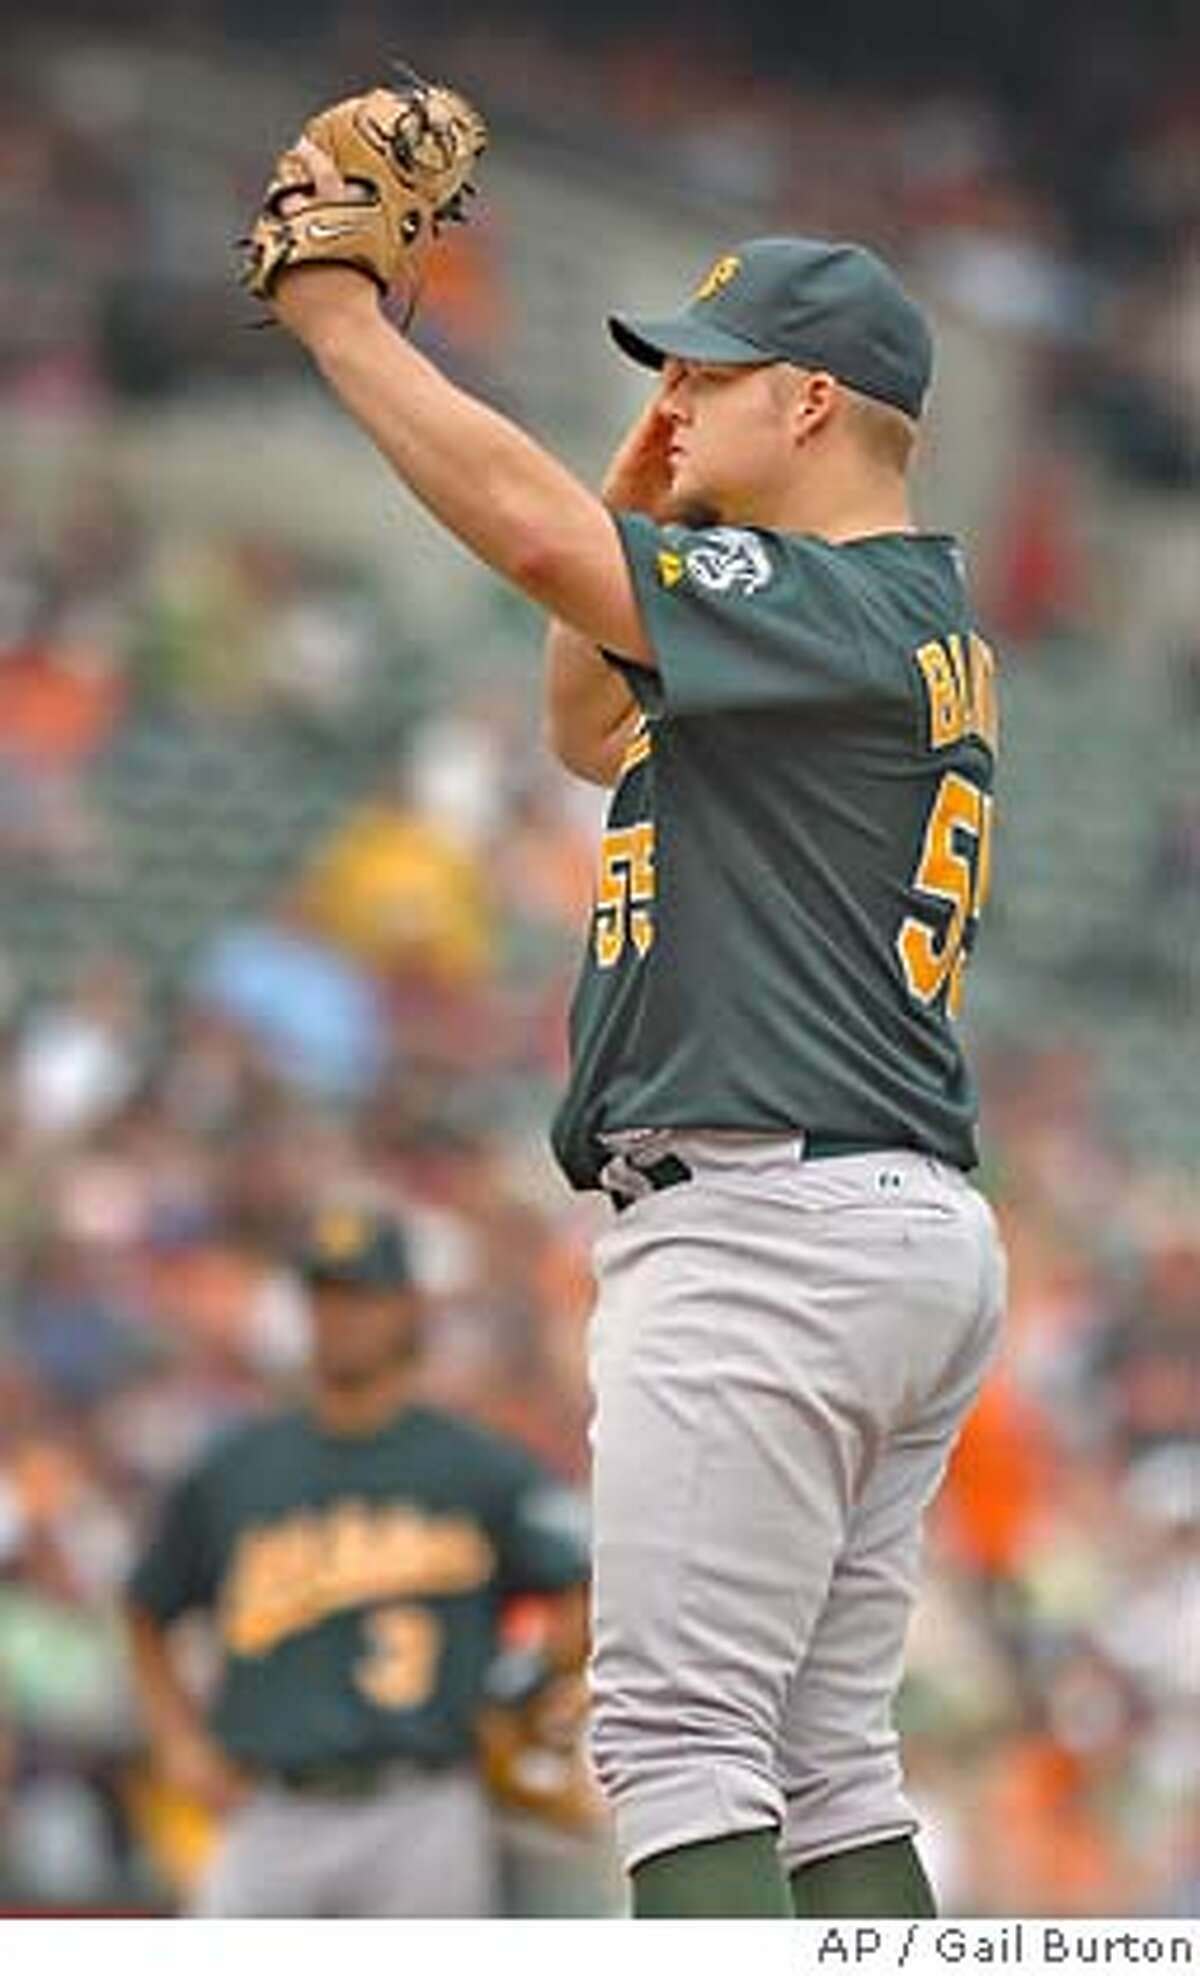 Oakland Athletics starting pitcher Joe Blanton wipes his brow after giving up a two-run home run to Baltimore Orioles' Melvin Mora in the fourth inning of a baseball game Sunday, May 27, 2007, in Baltimore. The Orioles won 8-4.(AP Photo/Gail Burton)